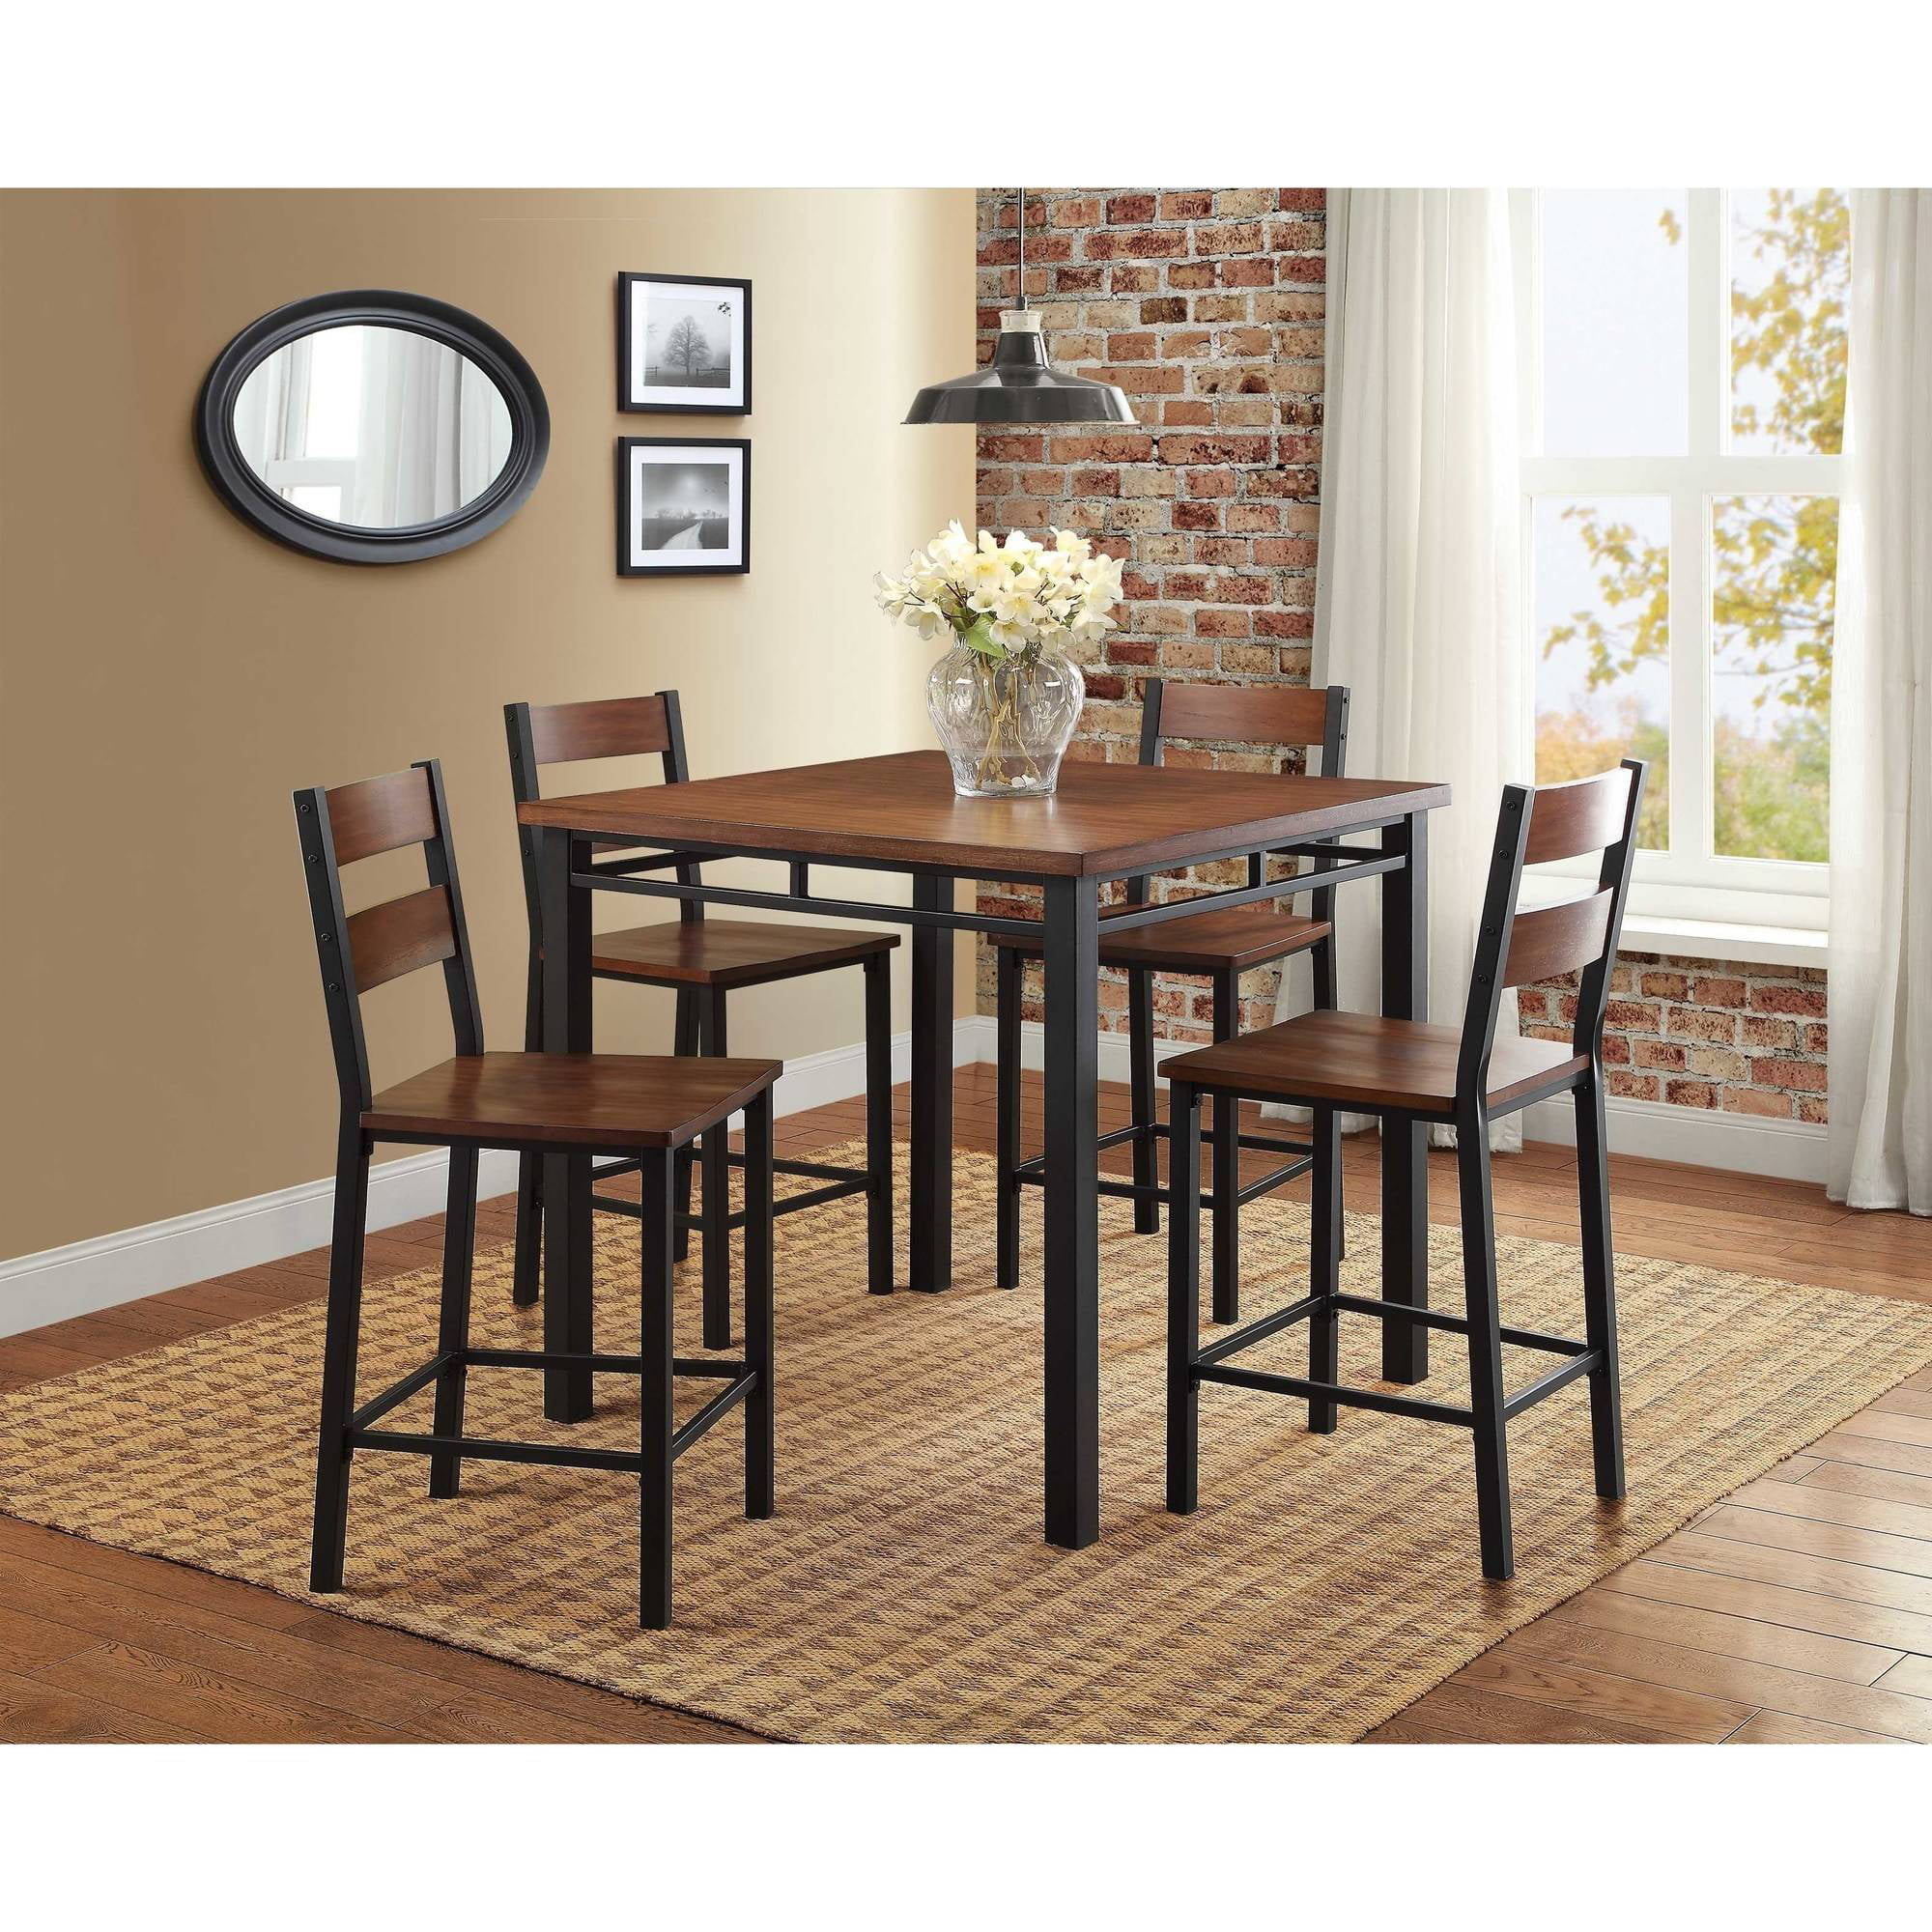 Kitchen Set Furniture Kitchen Dining Furniture Walmartcom